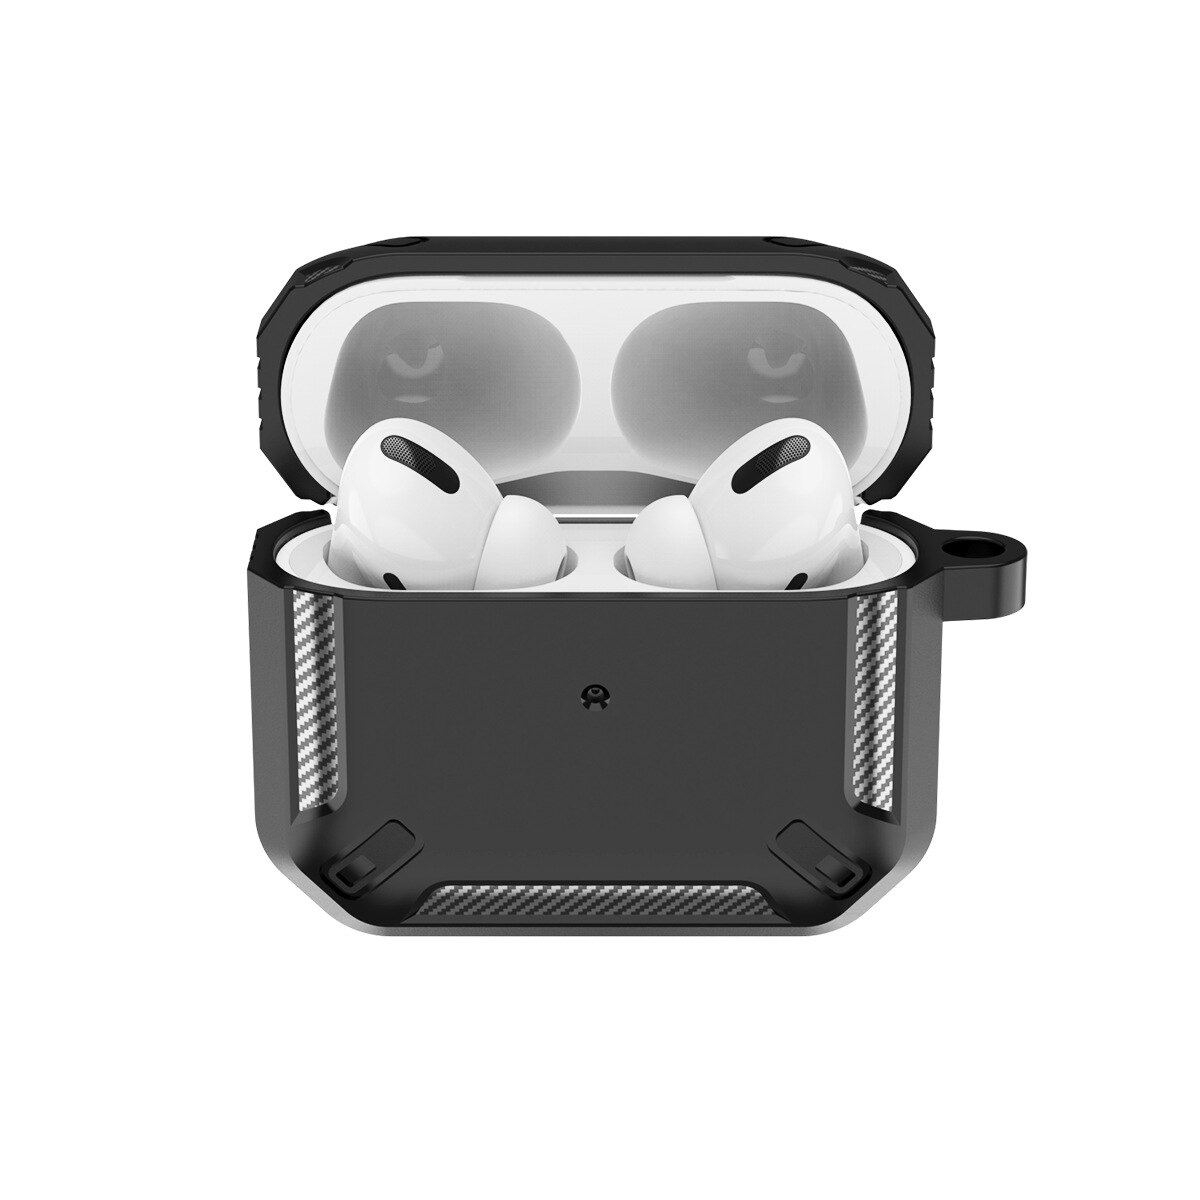 Stylish Case For Apple AirPods Pro Protective Bluetooth Wireless Earphone Cover For AirPods 3 Earphone Accessories With Keychain